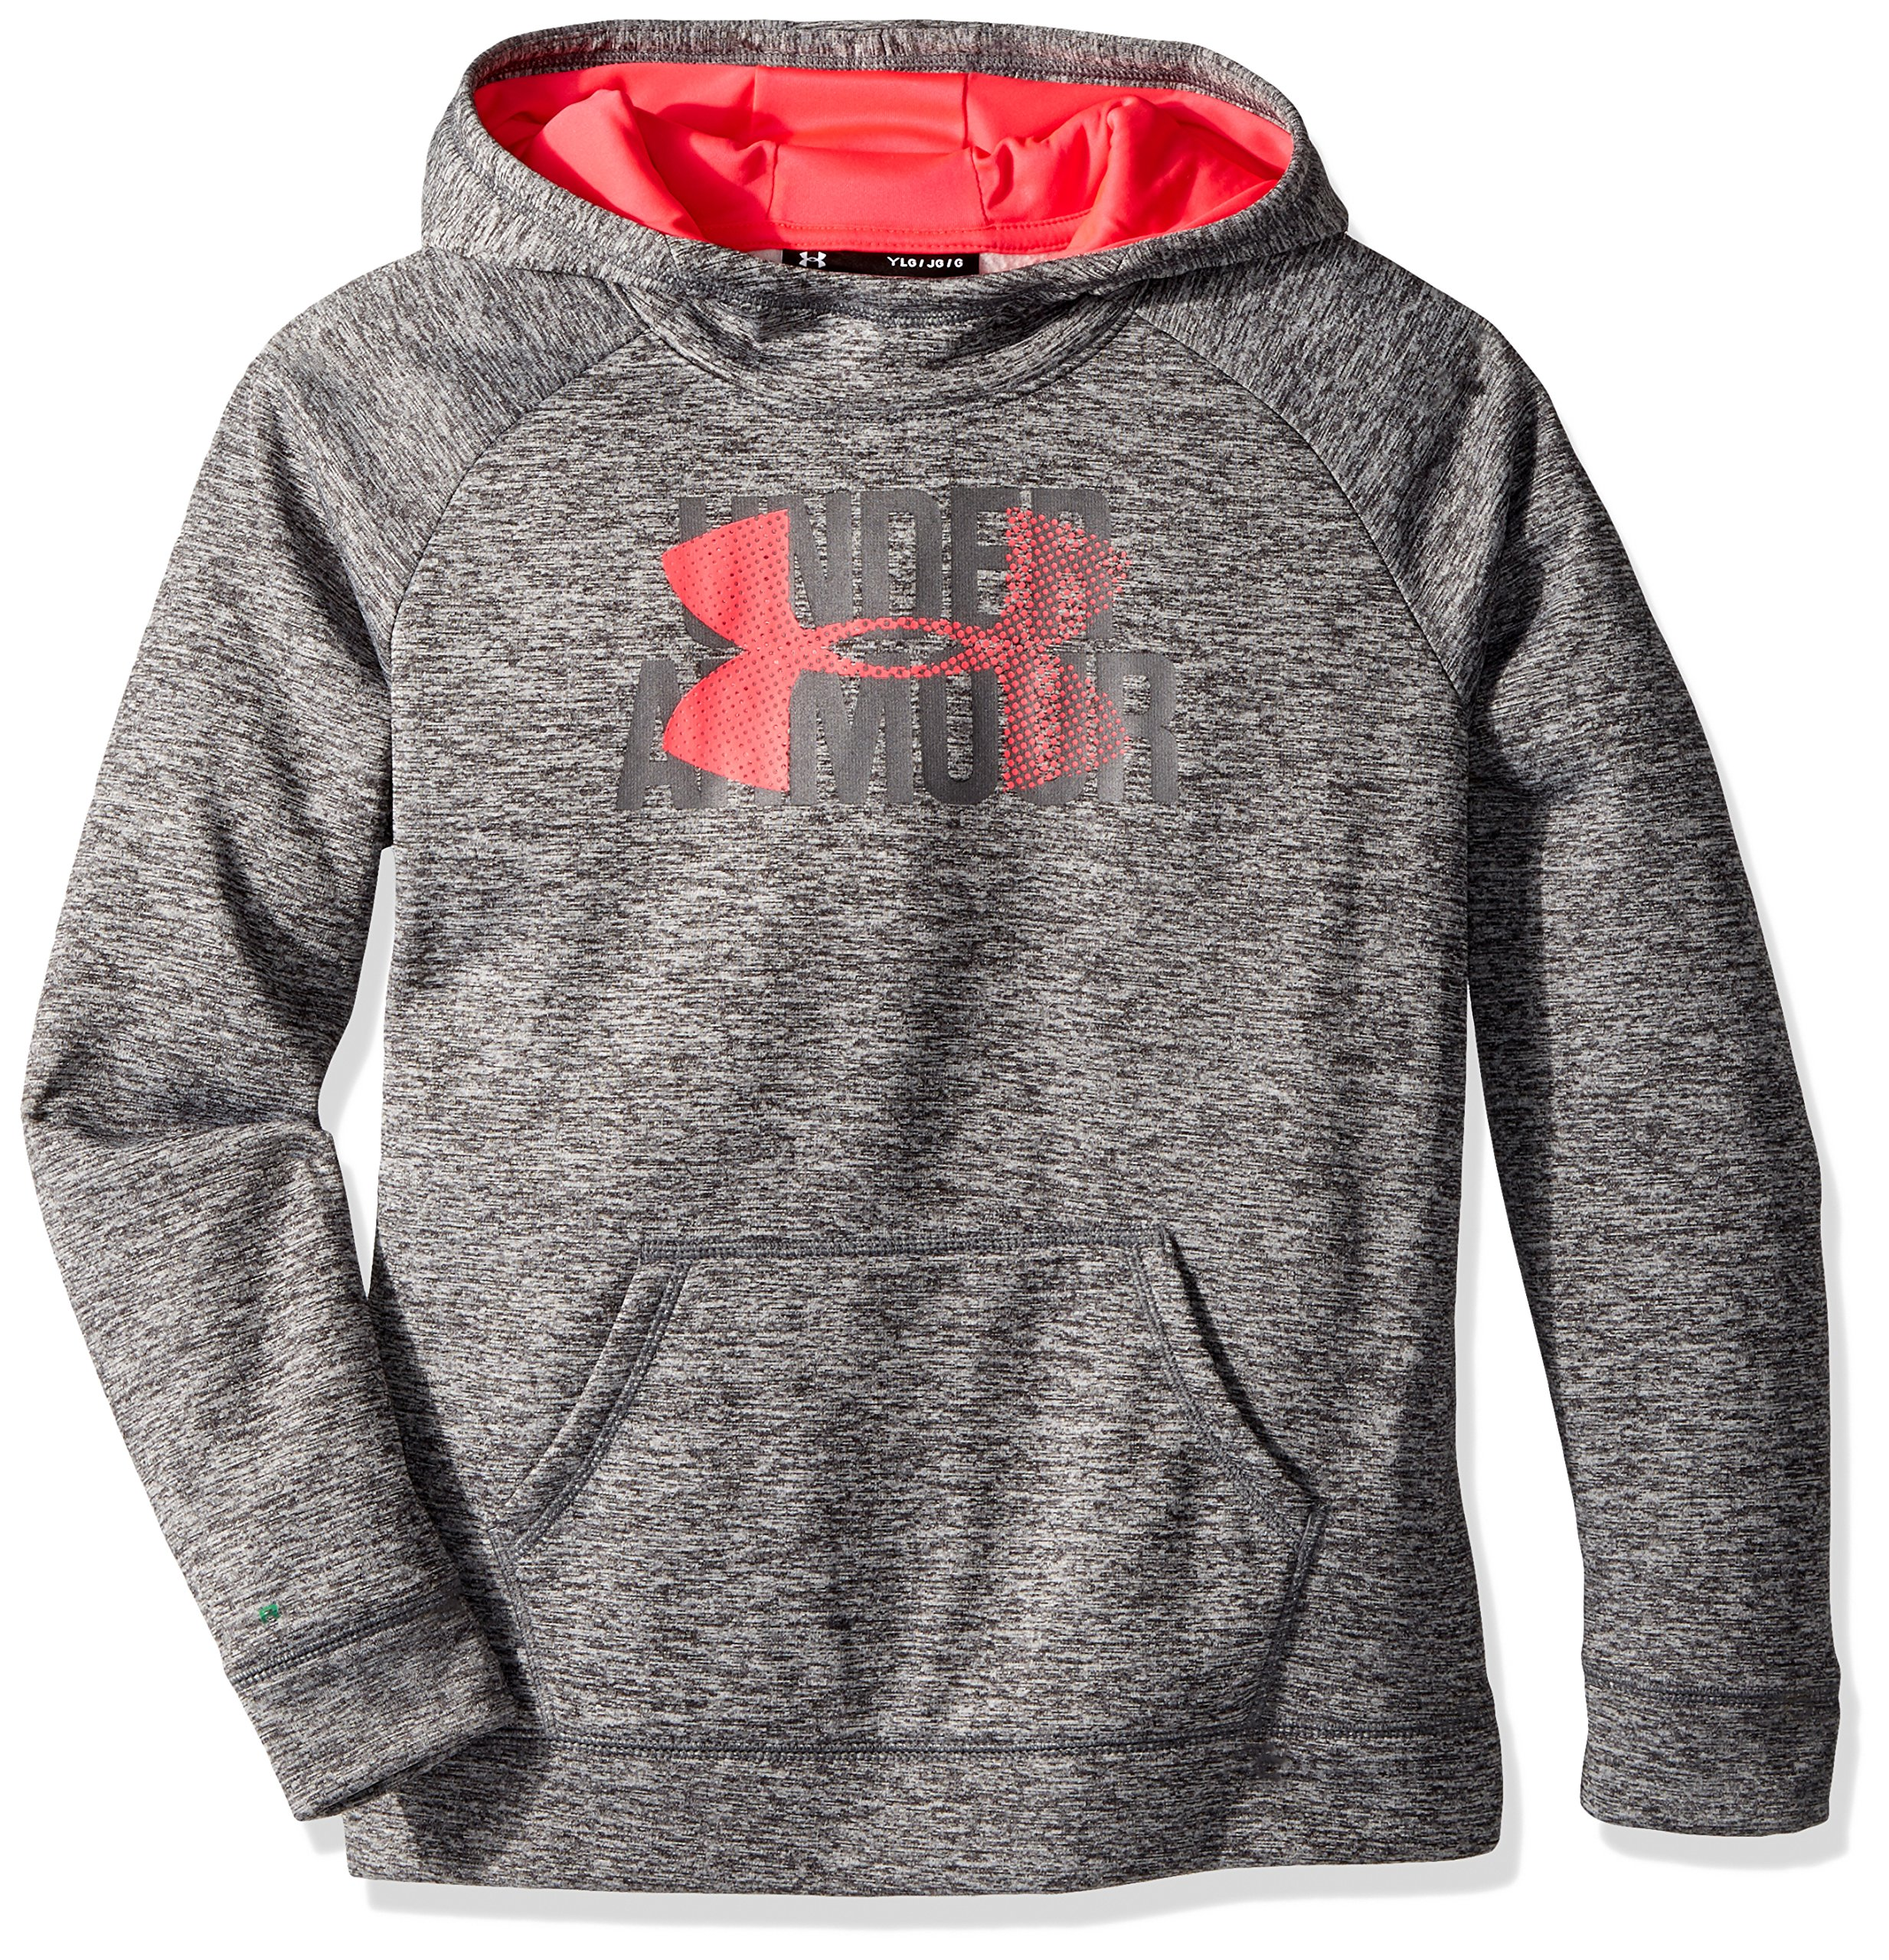 Under Armour Girls' Armour Fleece Big Logo Printed Hoodie, Black (001)/Penta Pink, Youth X-Small